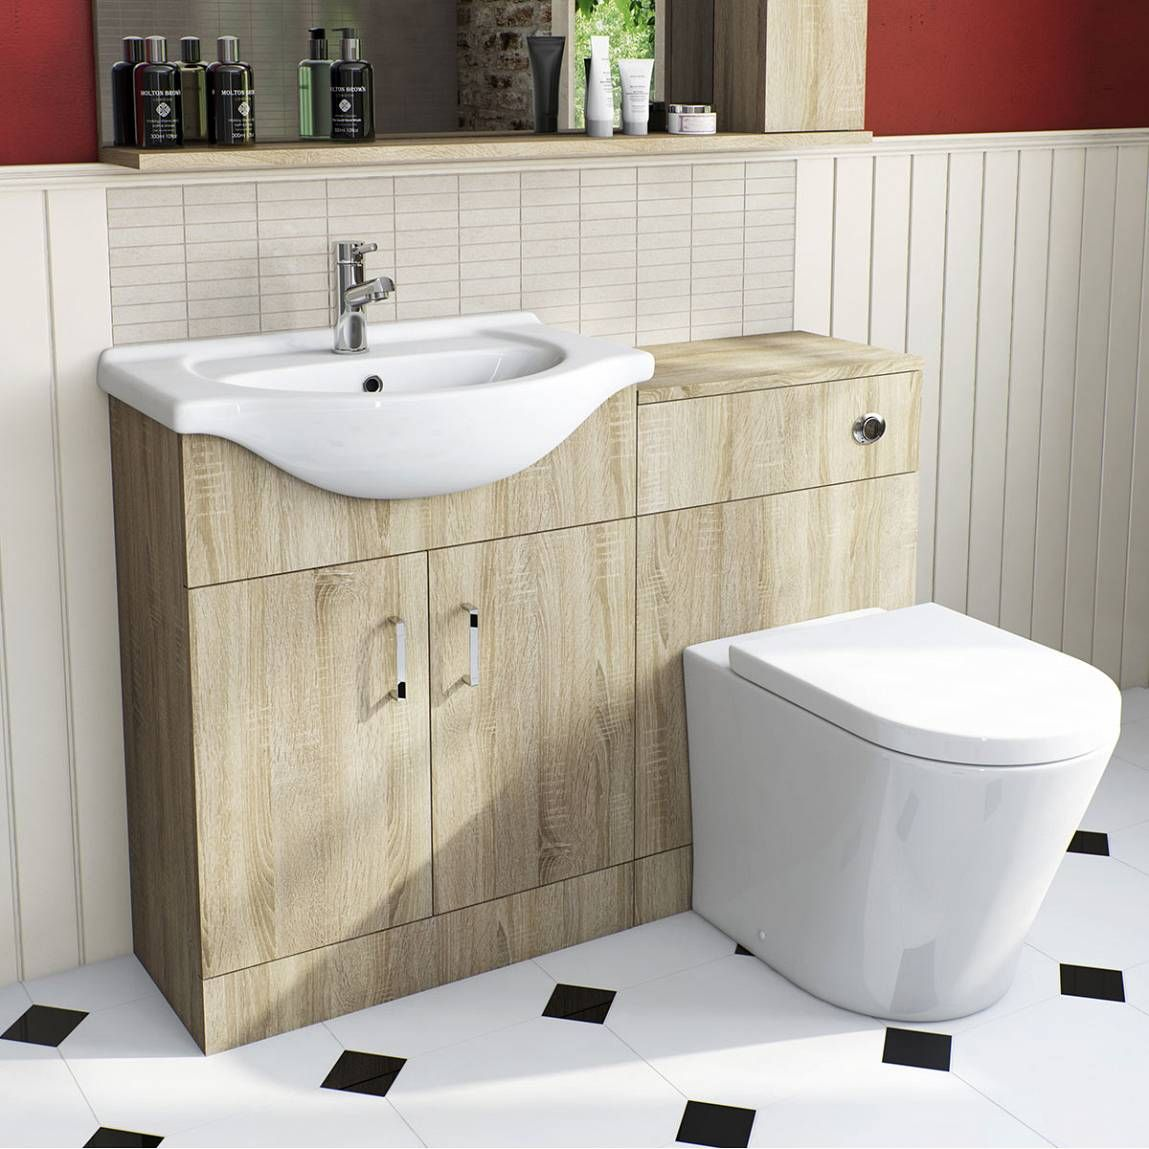 Sienna Oak Arc Combination Vanity Unit Small Victoria Plumb Small Bathroom Sinksback